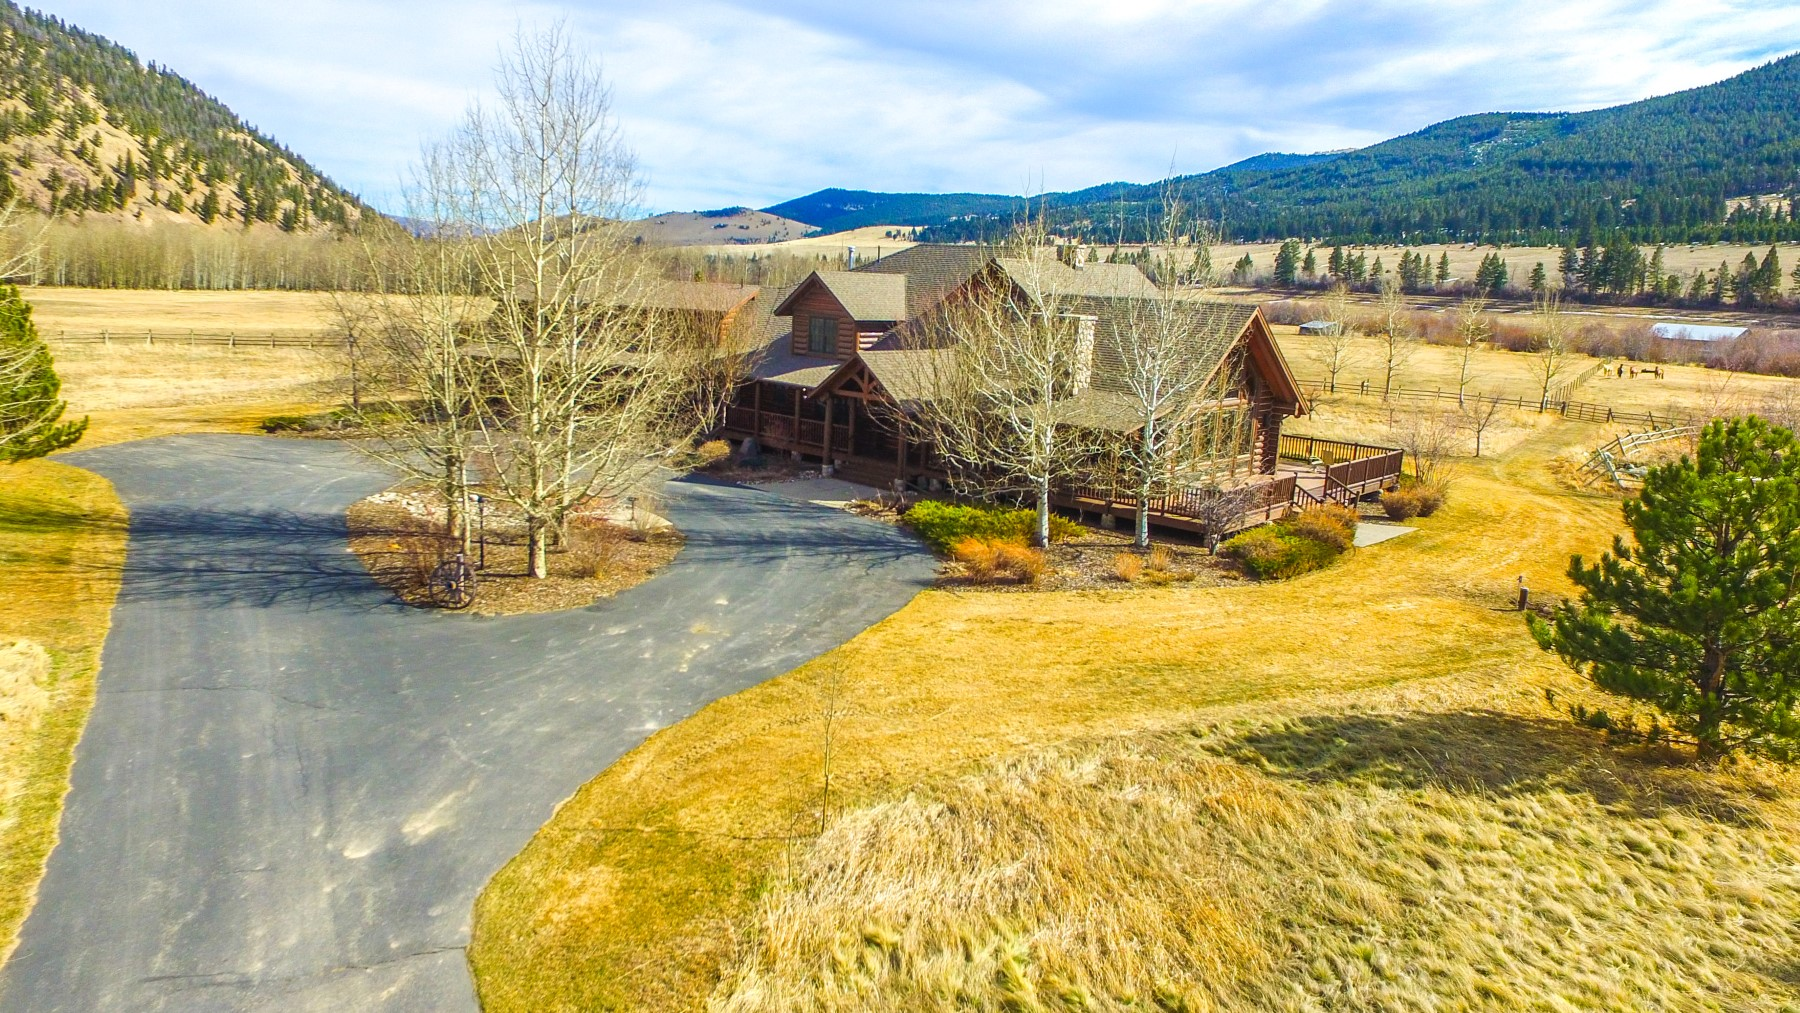 Additional photo for property listing at 10000 Prickly Pear Road 10000  Little Prickly Pear Rd Canyon Creek, Montana 59633 United States